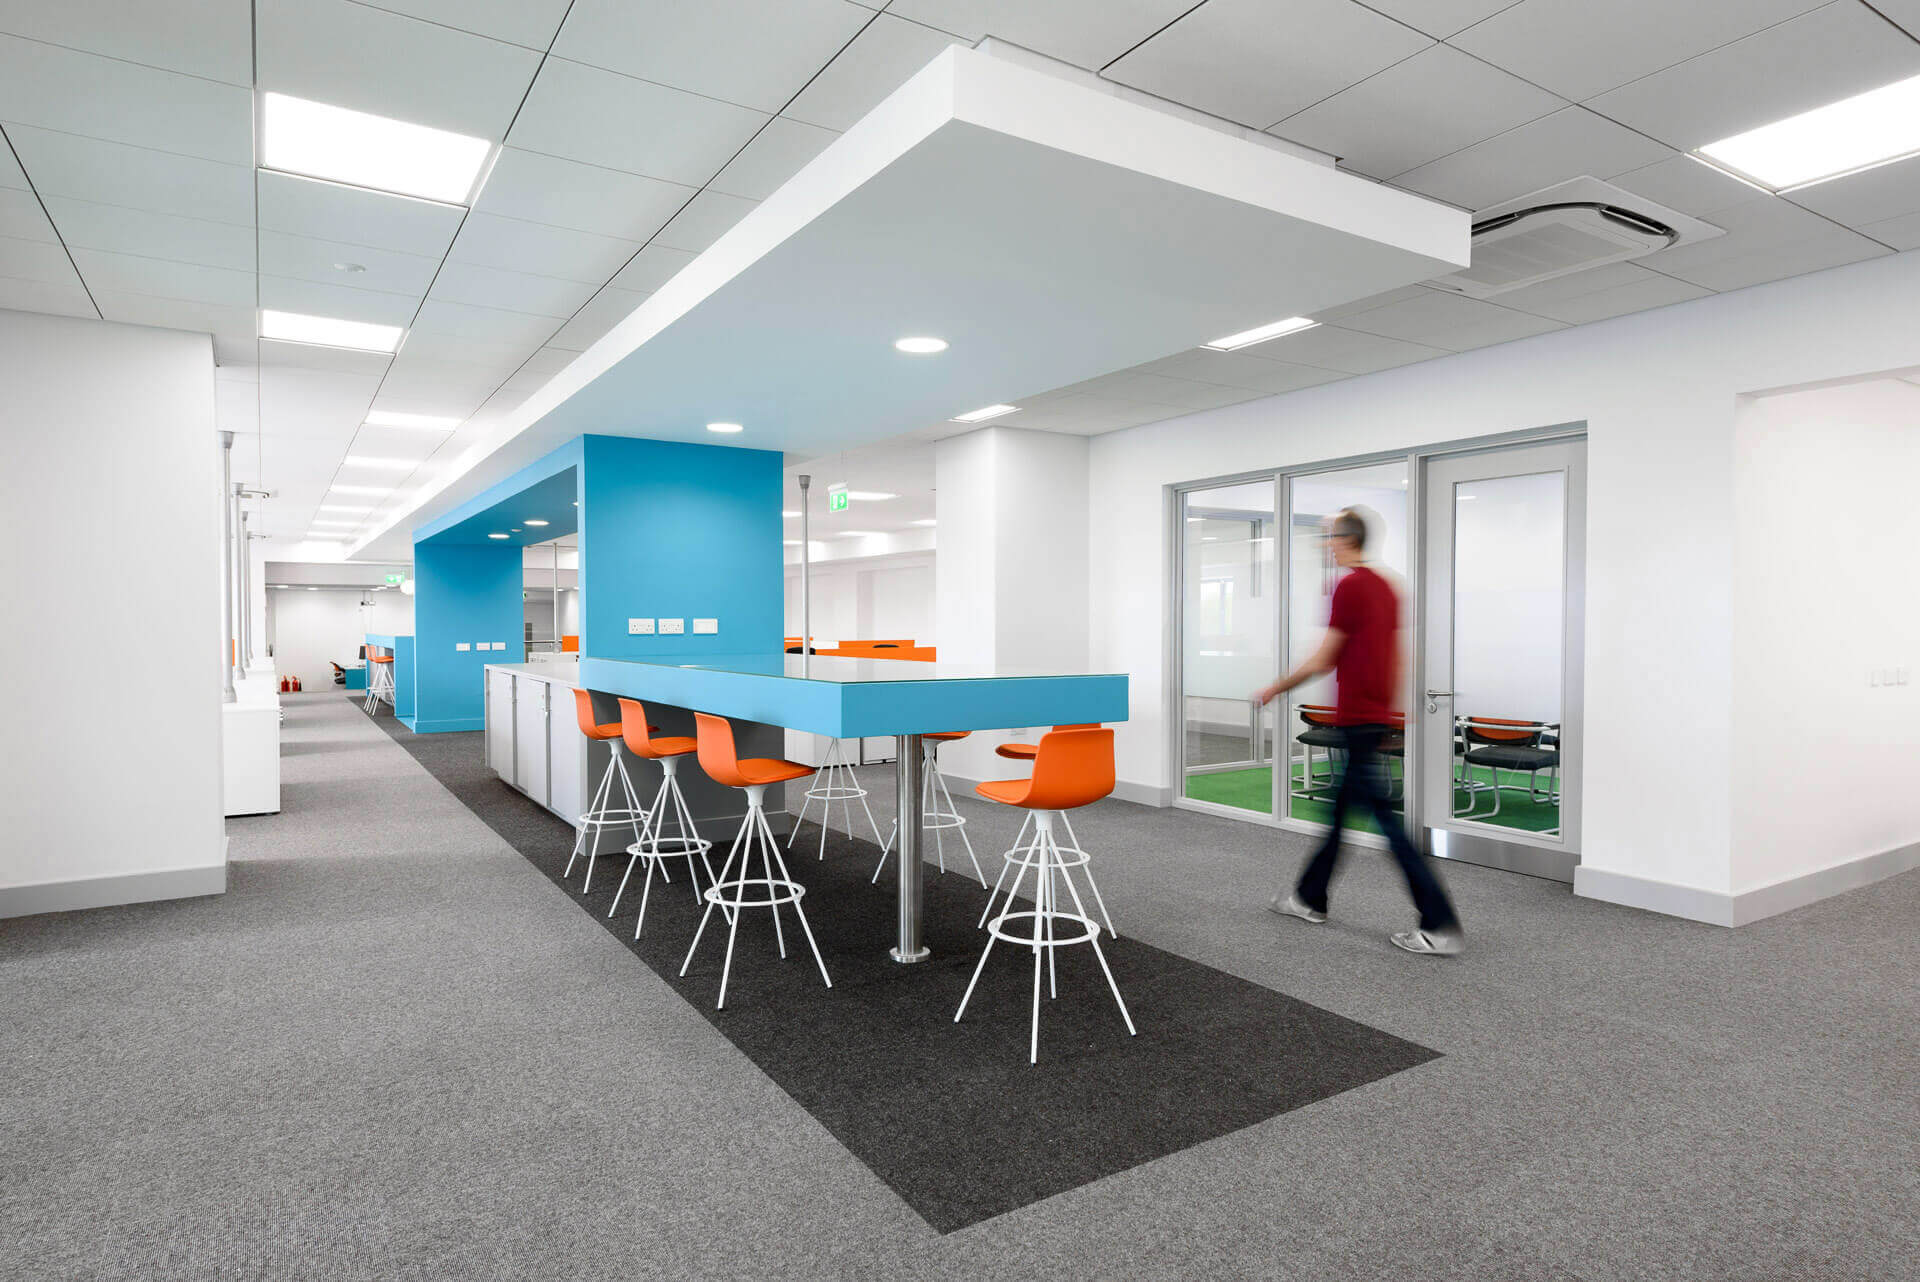 Open plan office area with blue snake feature and orange high stools forming informal meeting area, printing stations and storage area.